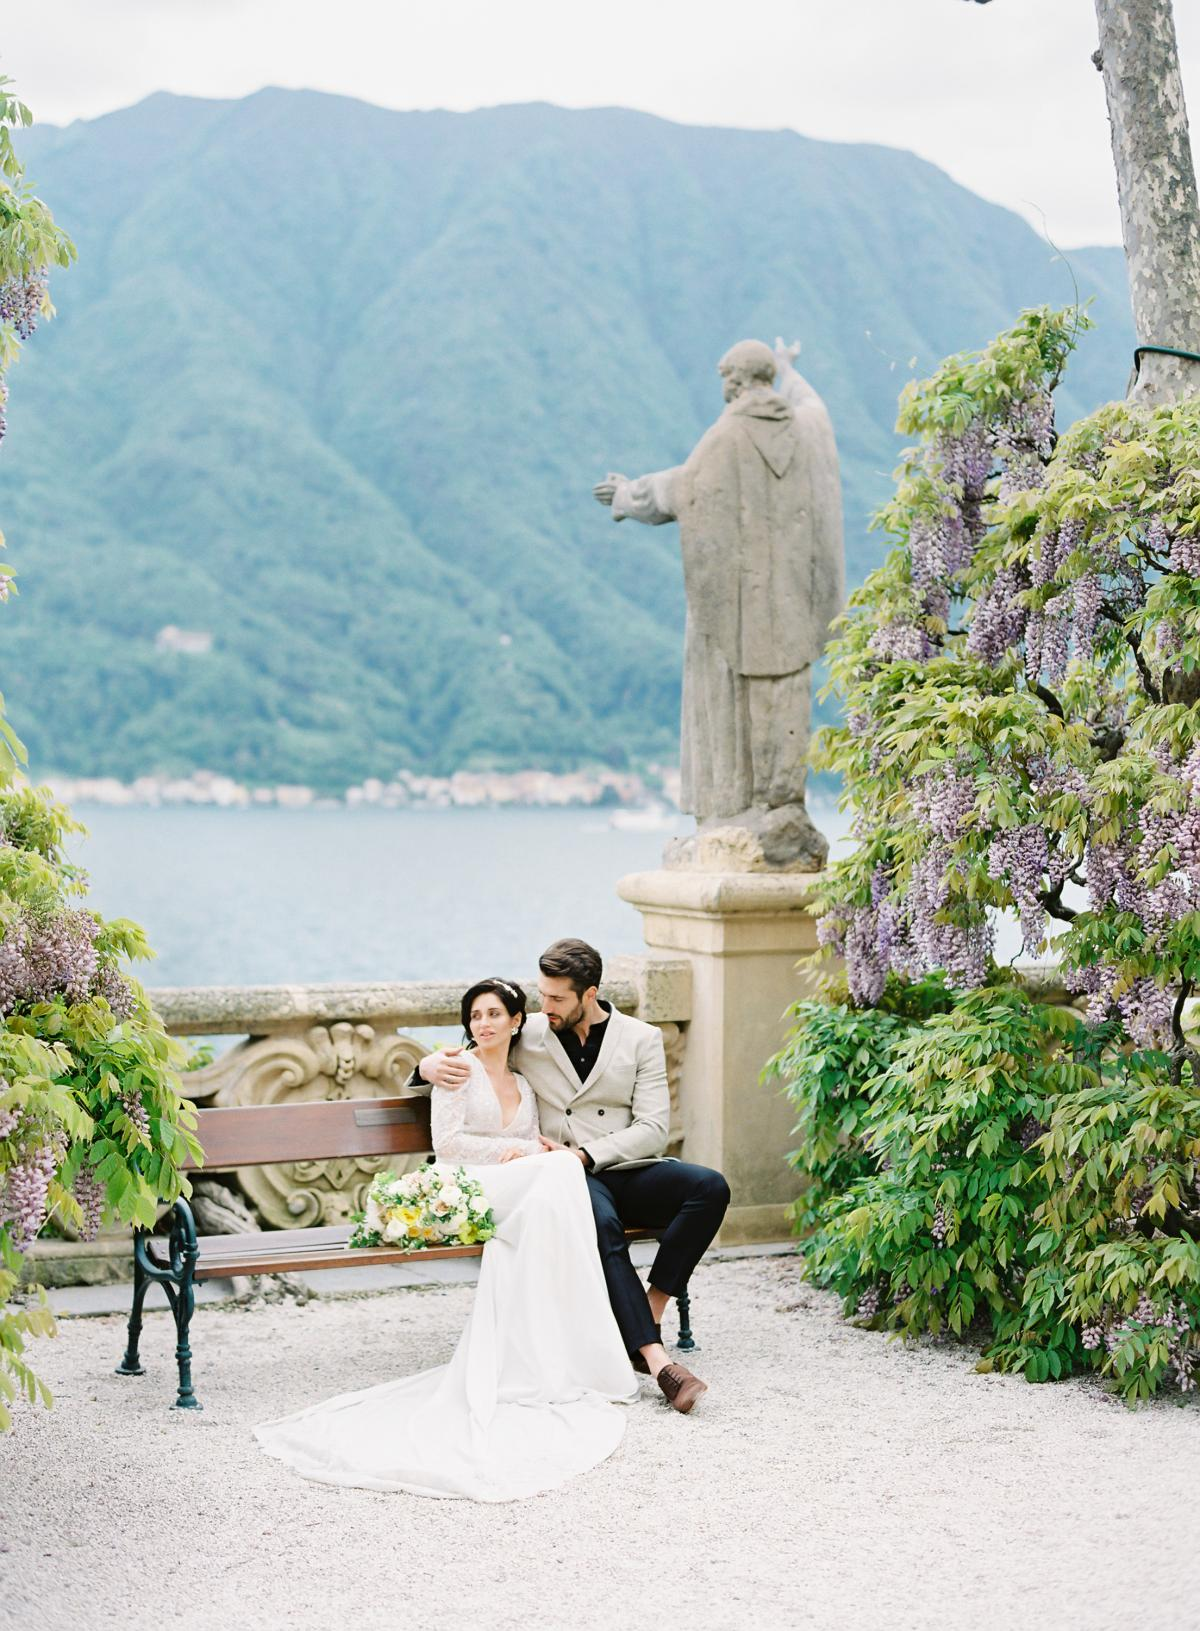 Lake Como Villa Del Balbianello Wedding Omalley Photographers 0035